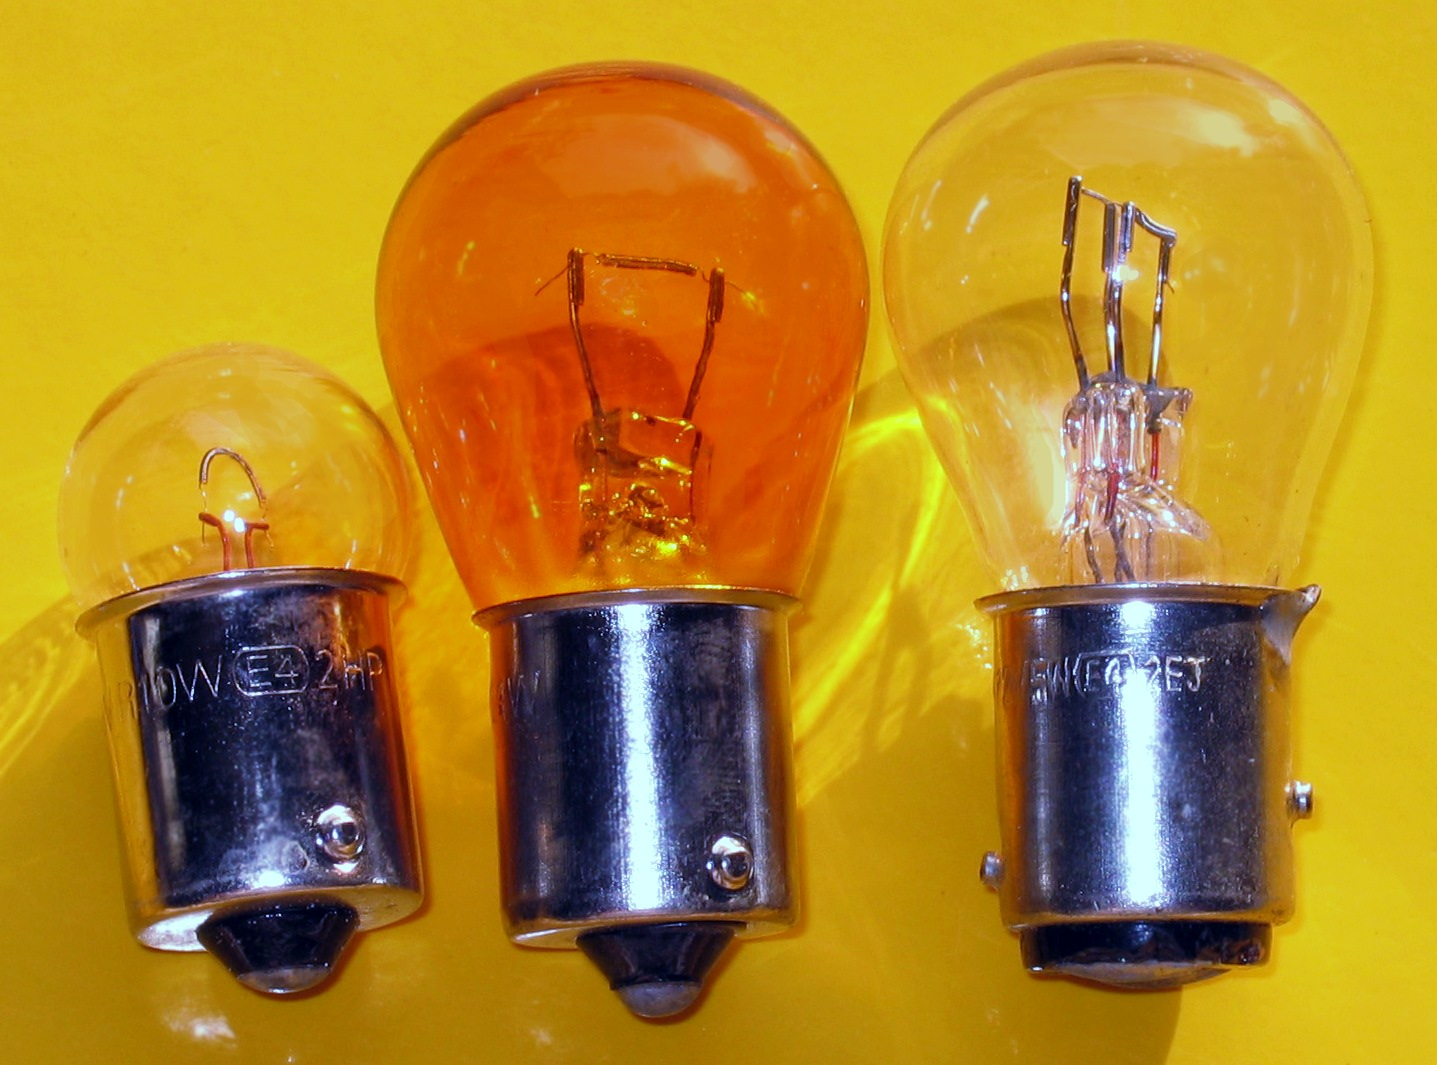 File:AUTOMOTIVE LIGHT BULBS 1157 21 5 W IMG 1310.JPG